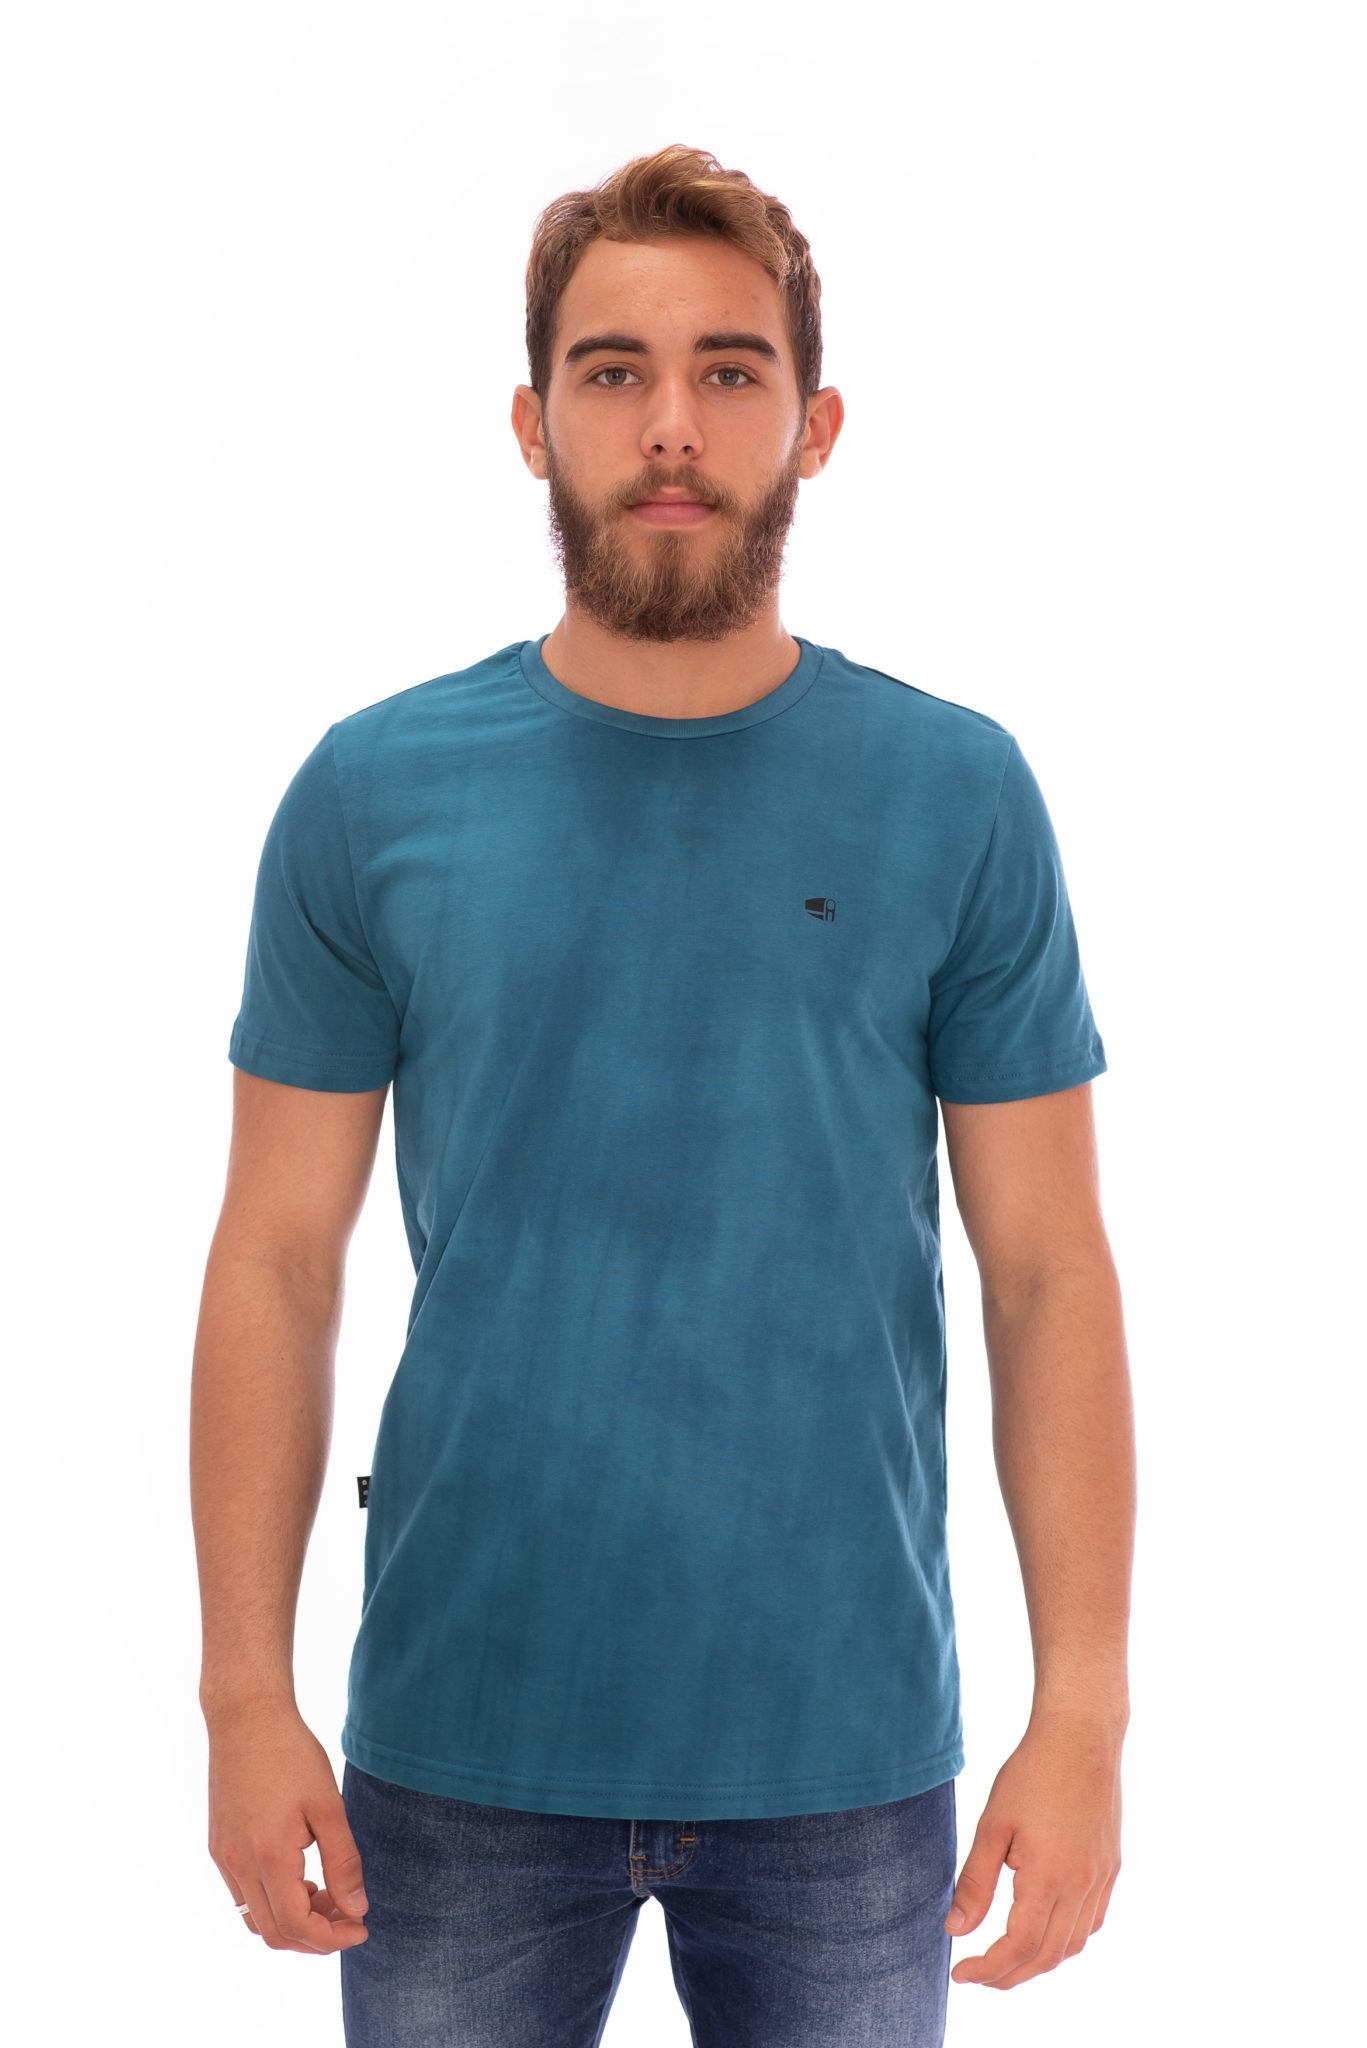 CAMISETA MASCULINA AEE SURF SLIM NEW SPLASH FUERTE REF. 1308